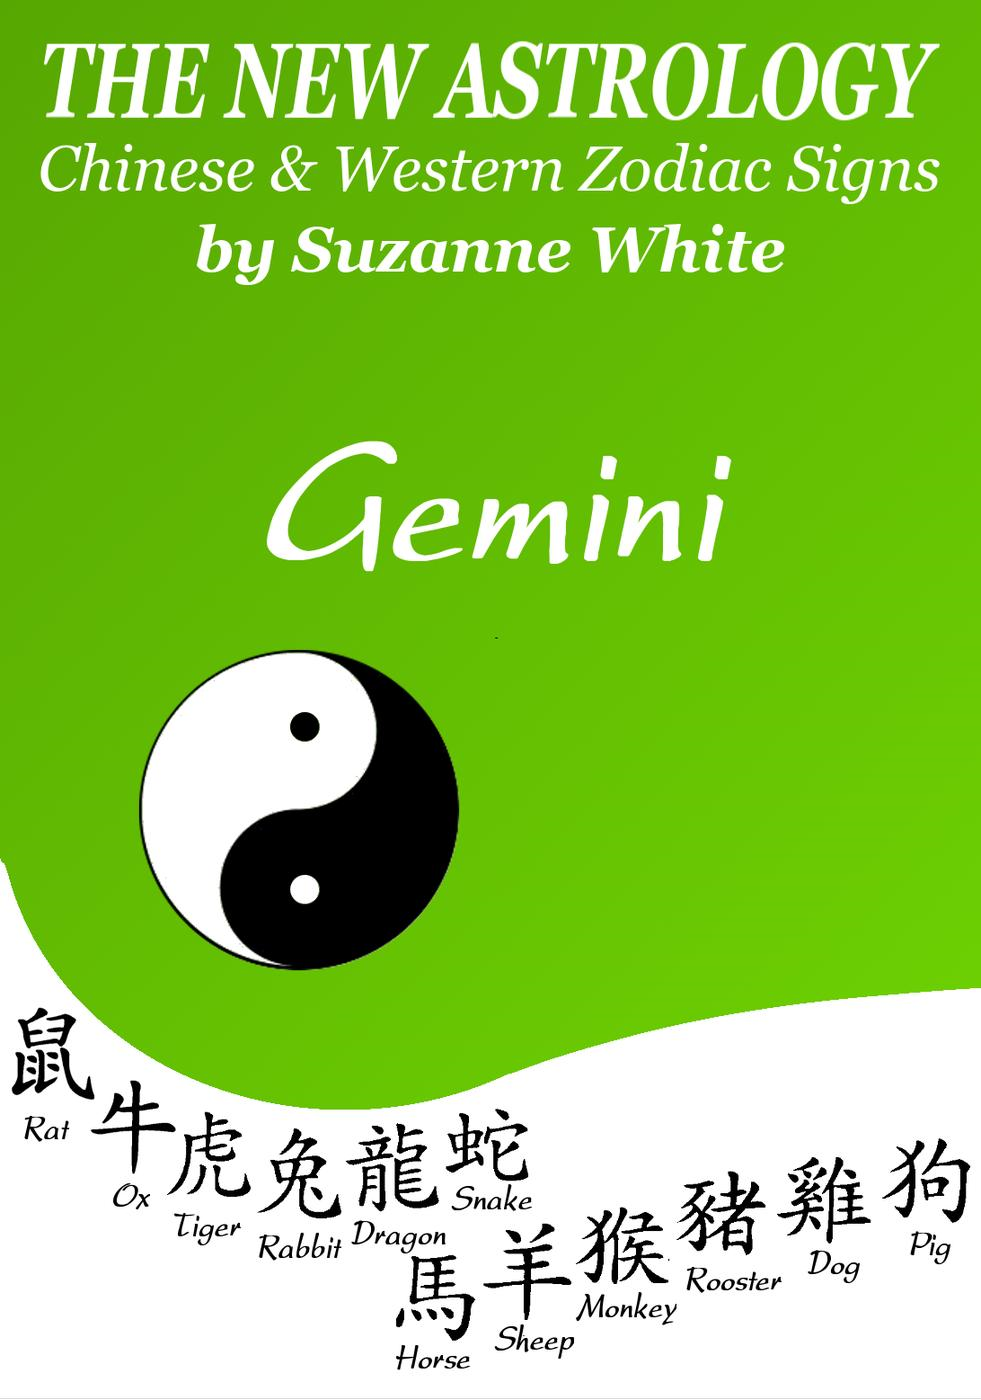 Suzanne White - Gemini - The New Astrology™ - Chinese & Western Zodiac Signs